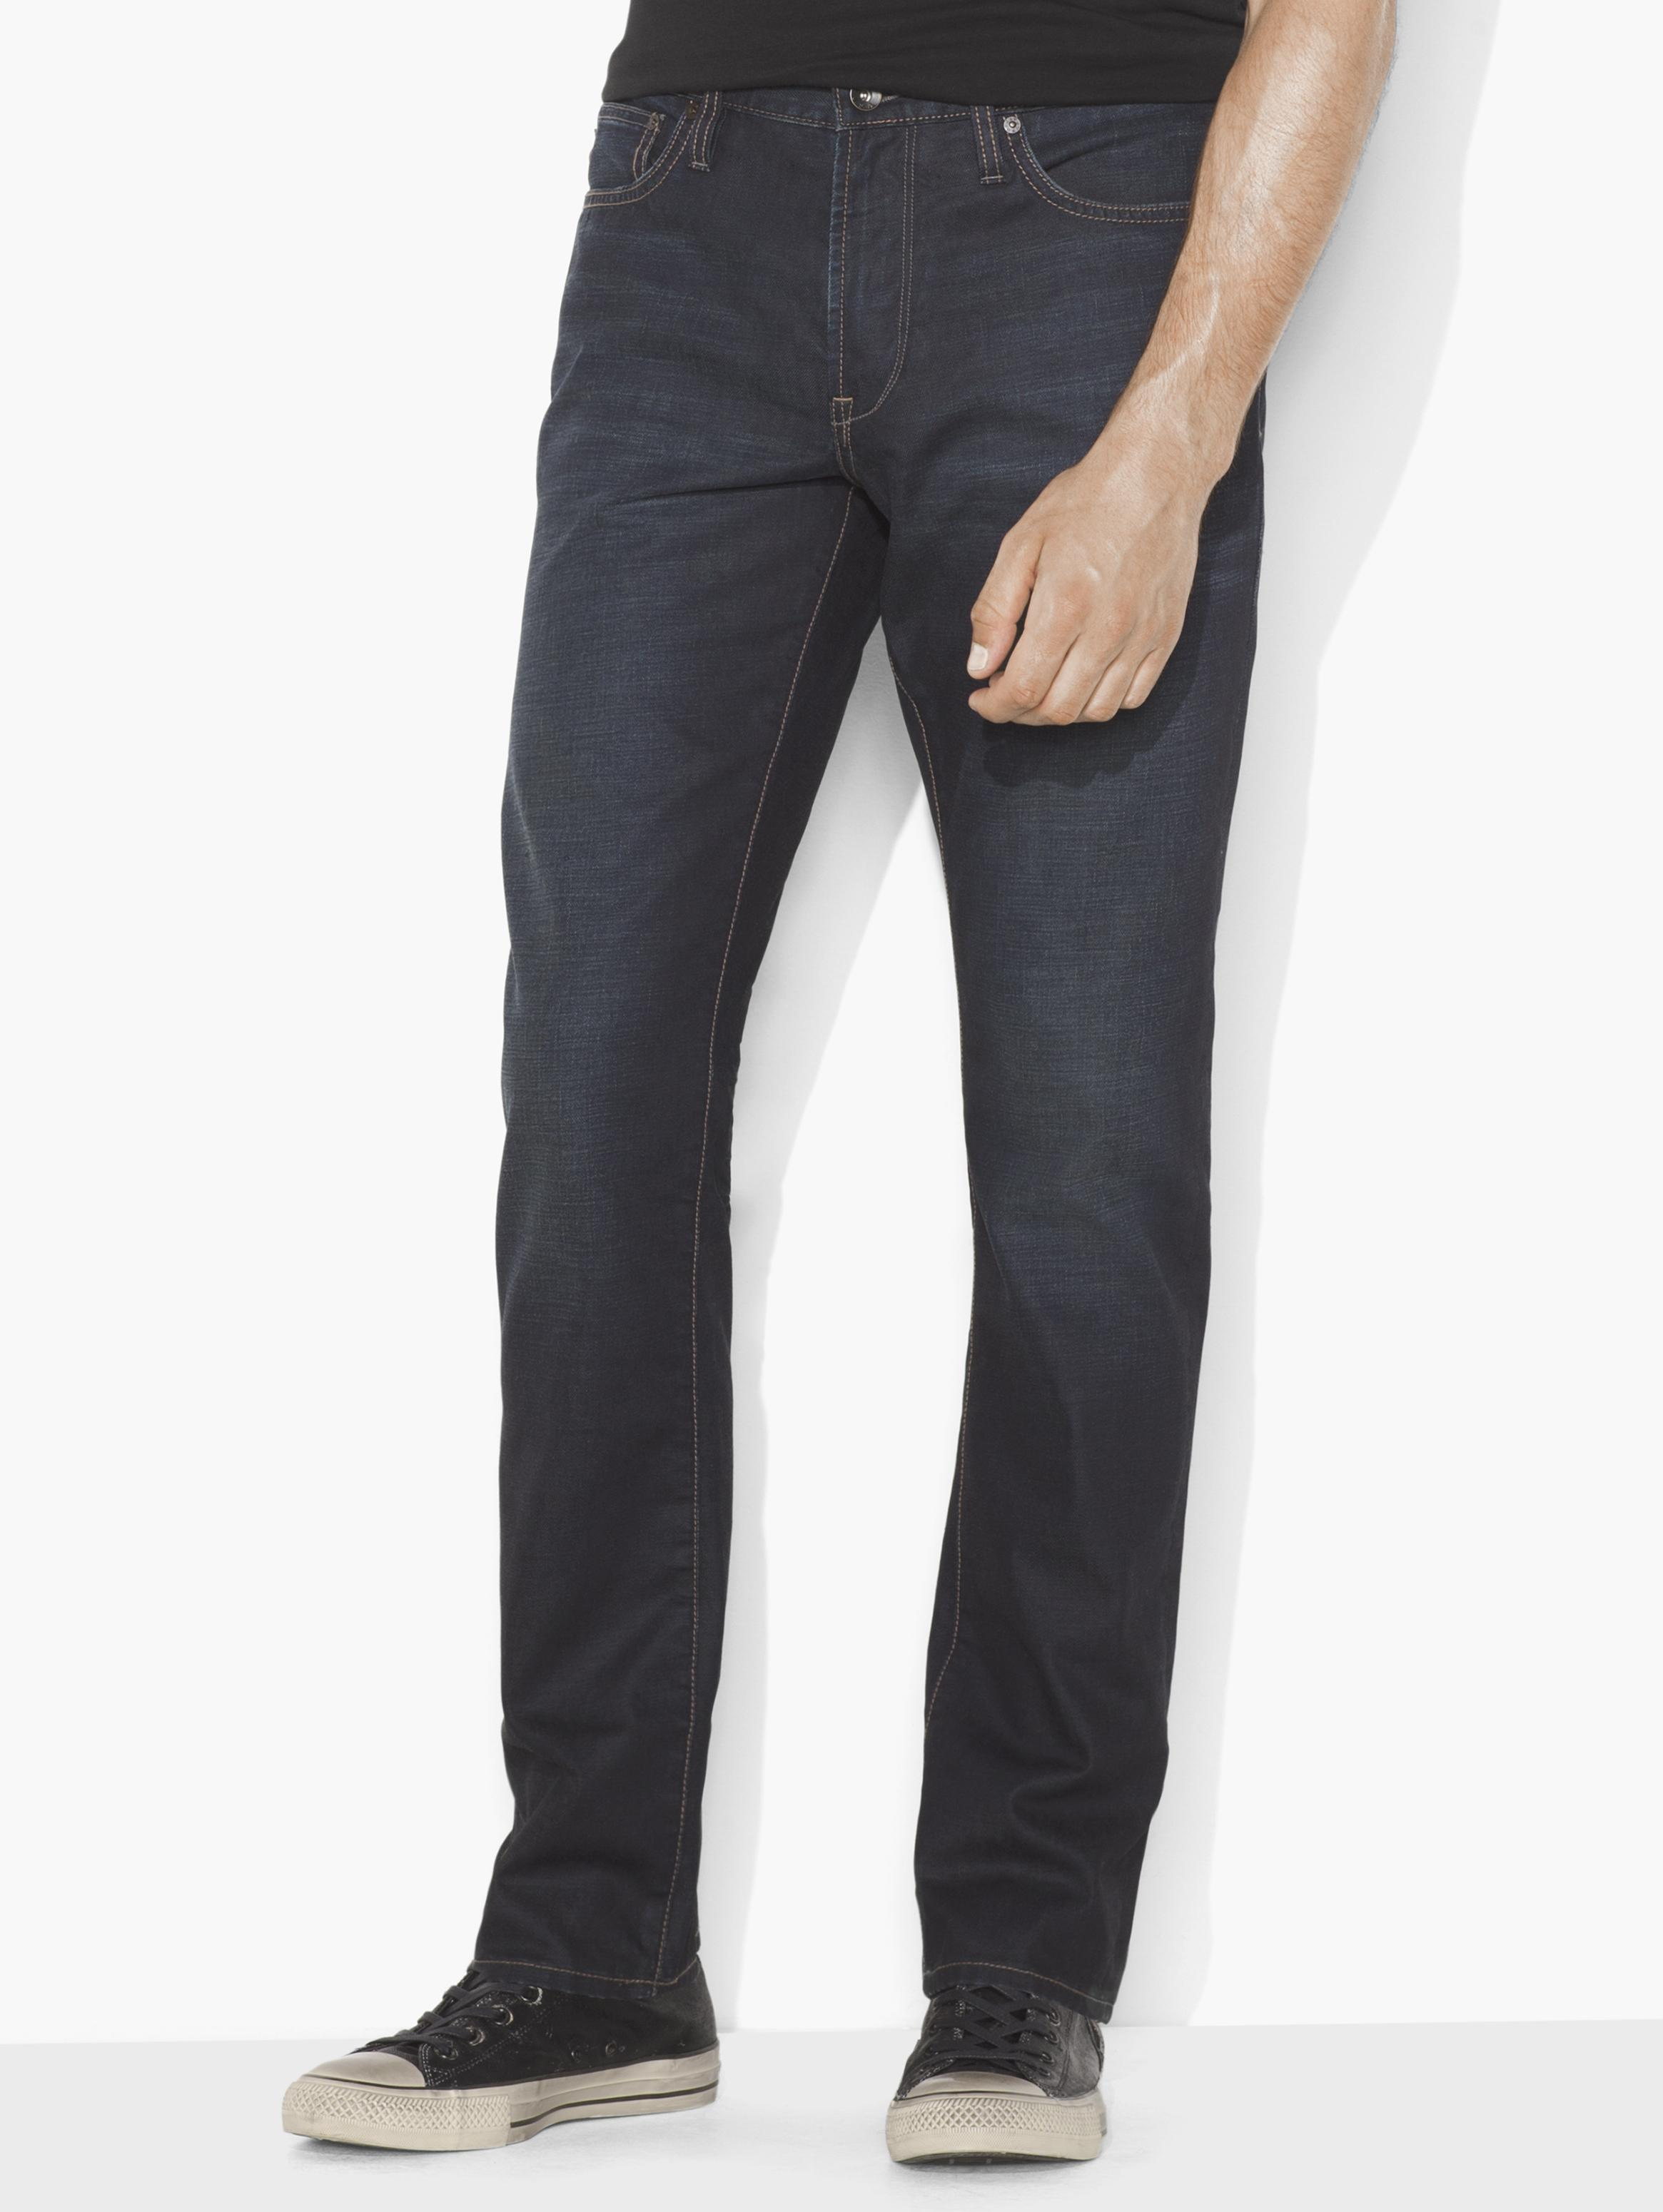 Wight Hand-Sanded Jean